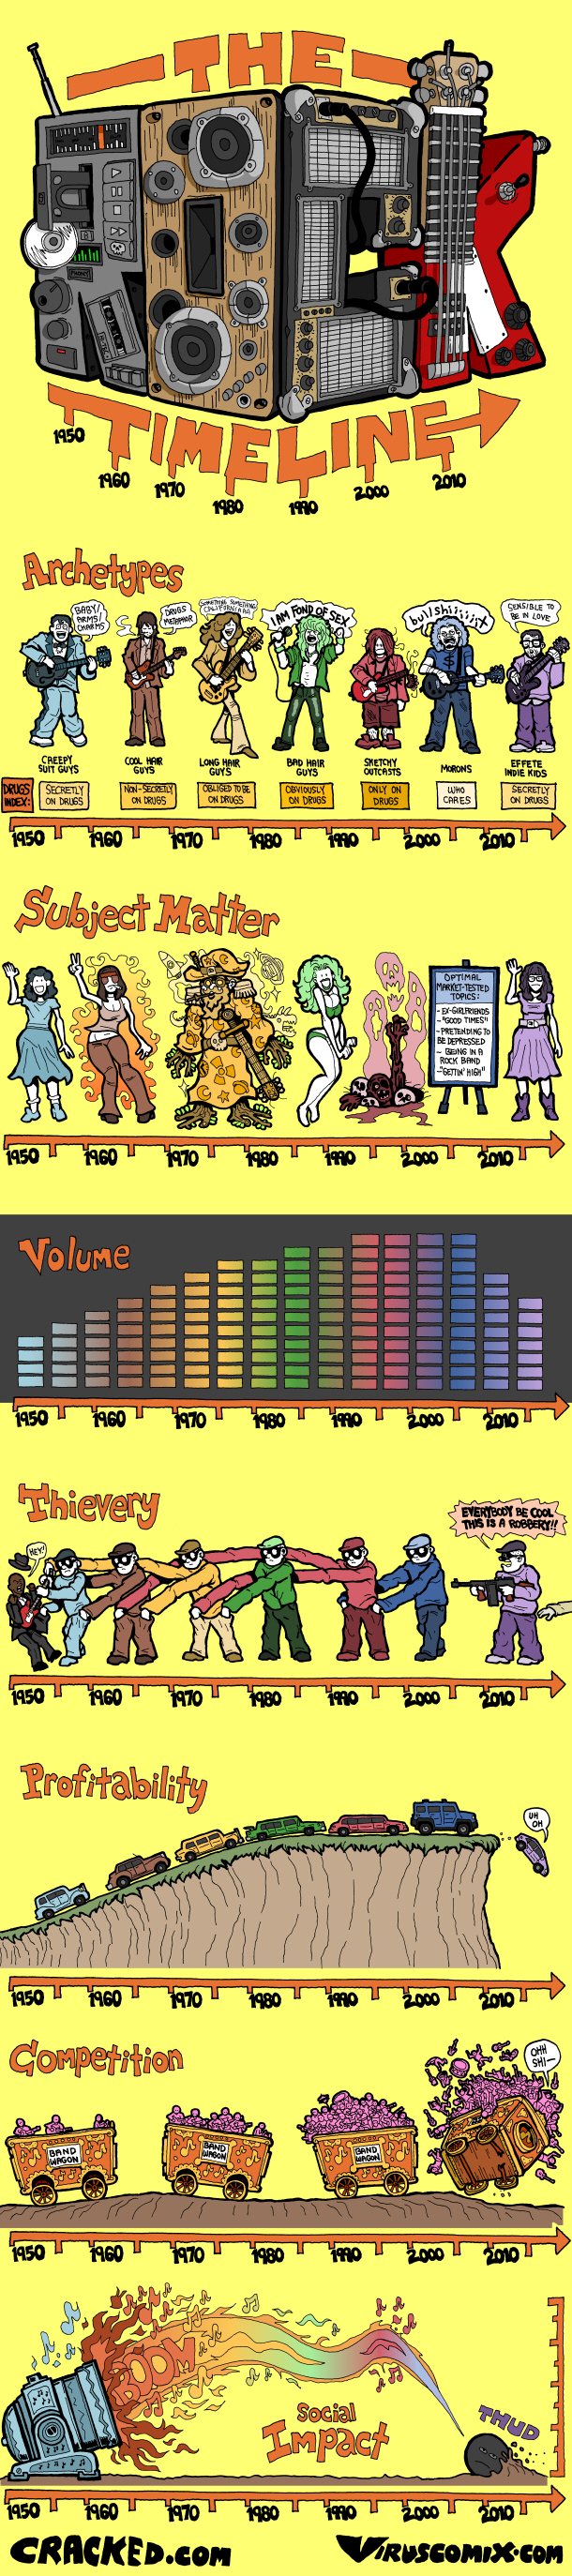 Rock Timeline: From Classic Rock to Modern Crap [COMIC]